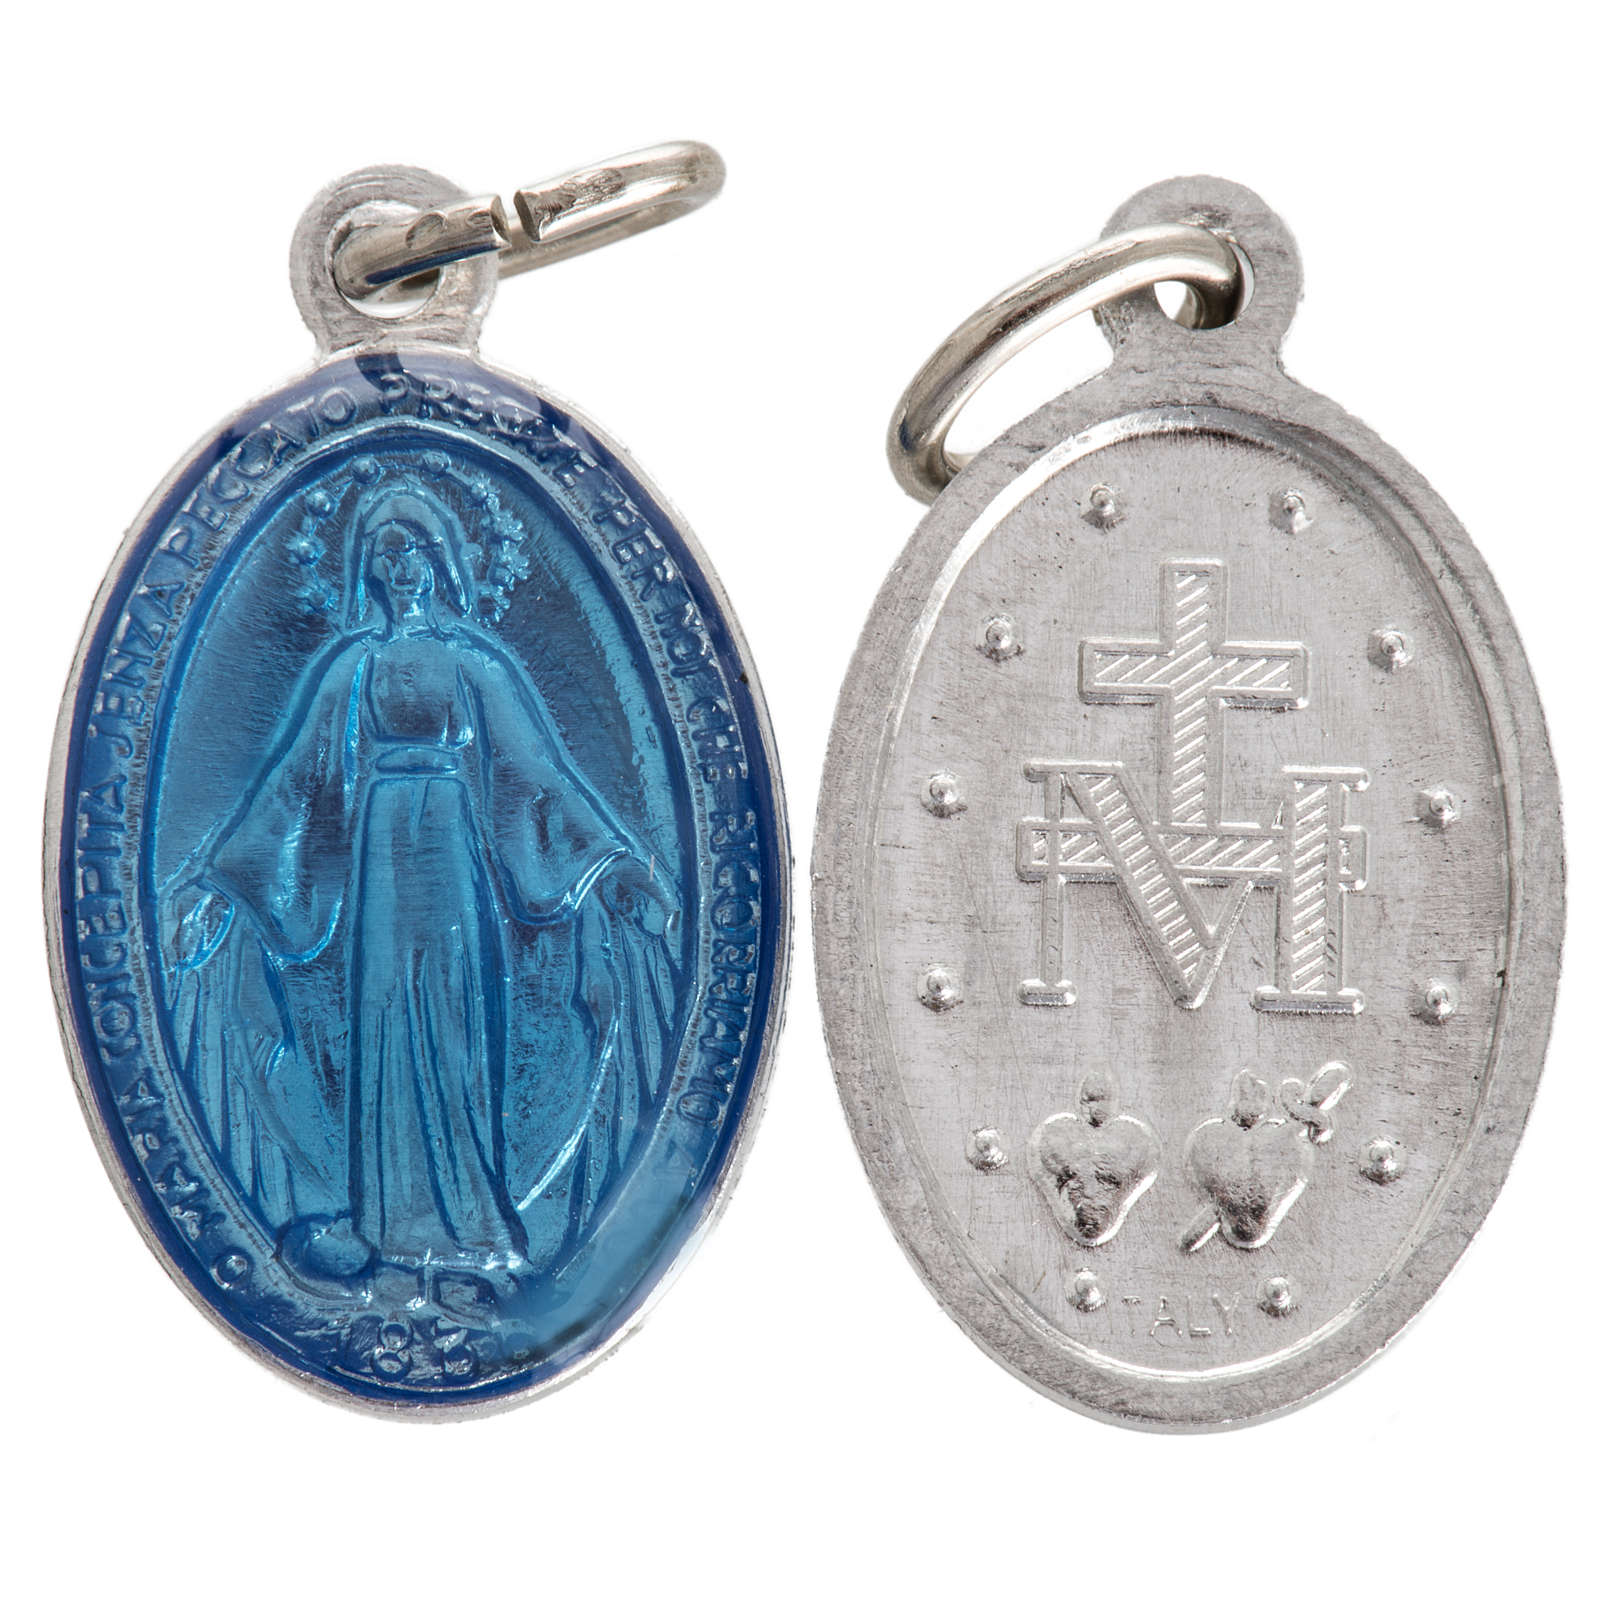 Miraculous Medal in steel and light blue enamel 18mm 4